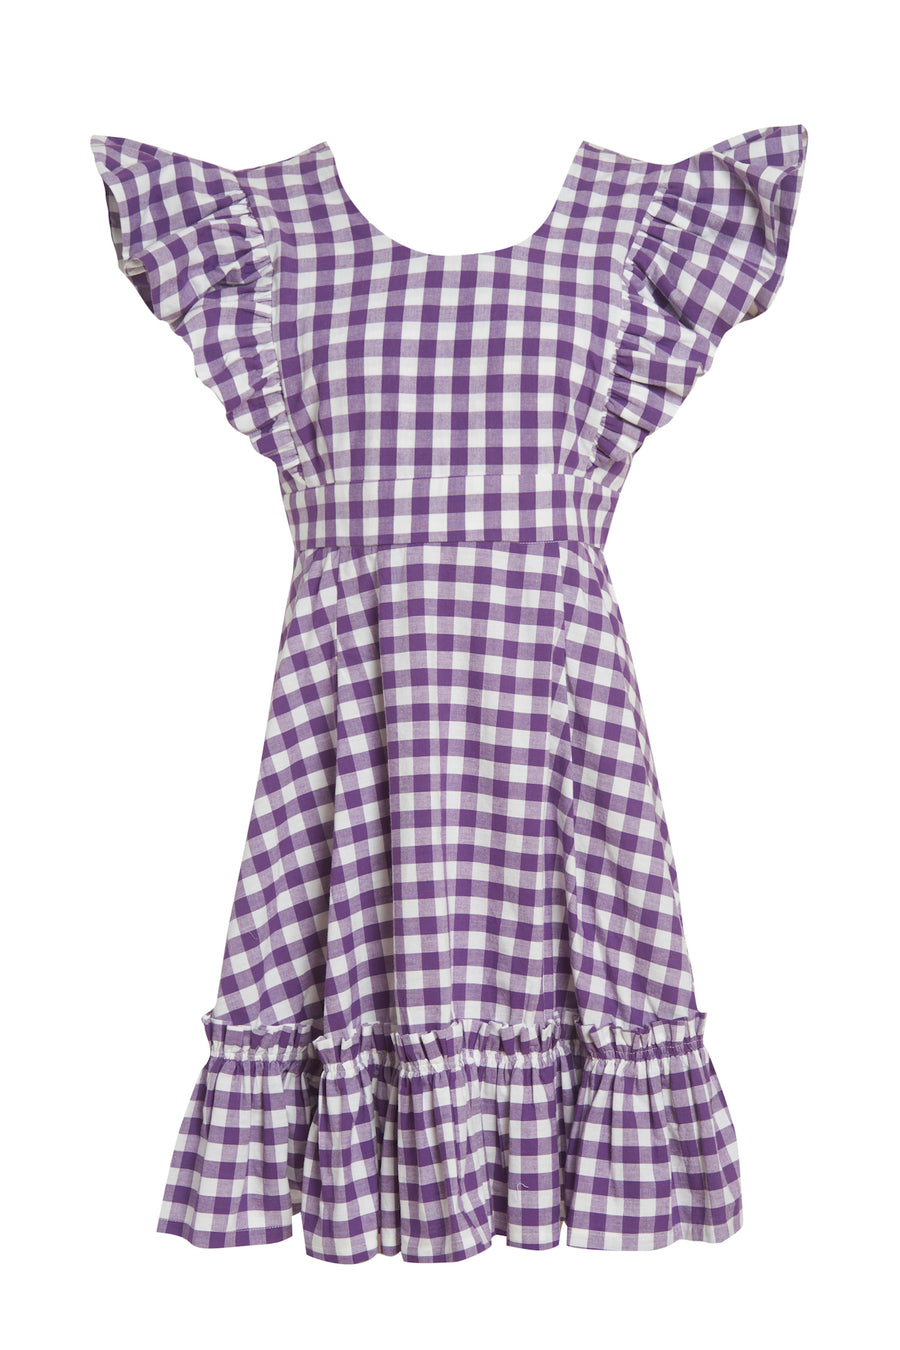 Quinoa Dress Purple Gingham